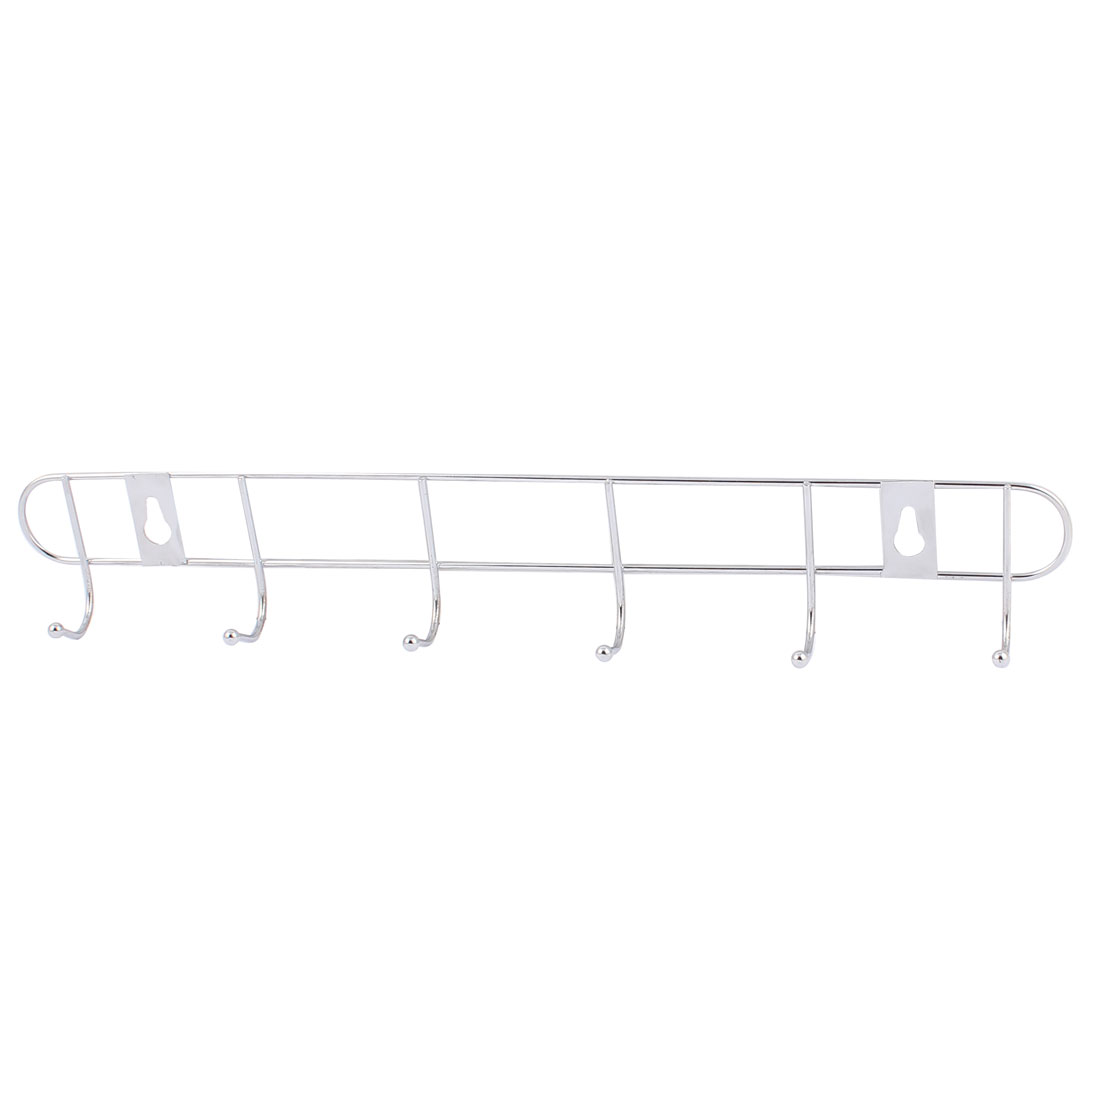 Metal 6 Hooks Ball End Family Kitchen Bathroom Towels Clothes Wall Rack Hook Hanger